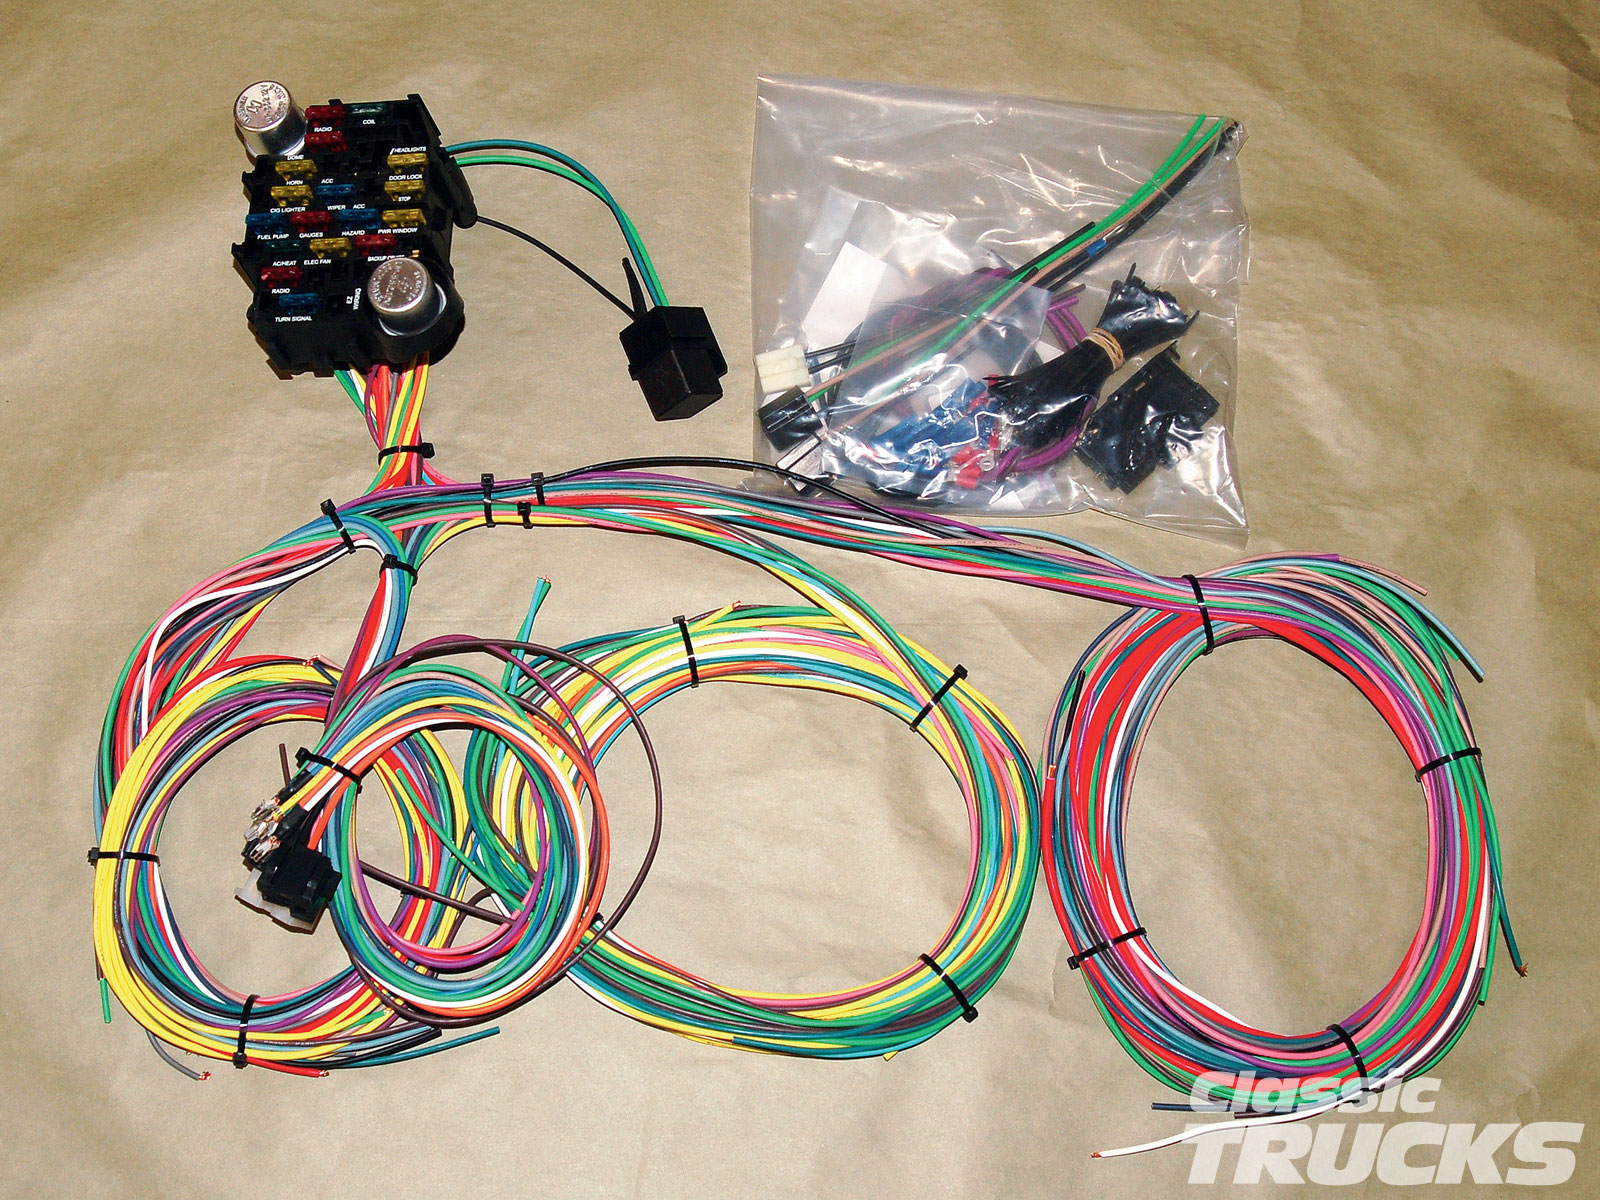 1010clt 02 o aftermarket wiring harness install kit?resize=640%2C480 how much does a wire harness cost to replace hobbiesxstyle how much does it cost to replace a wiring harness at gsmx.co